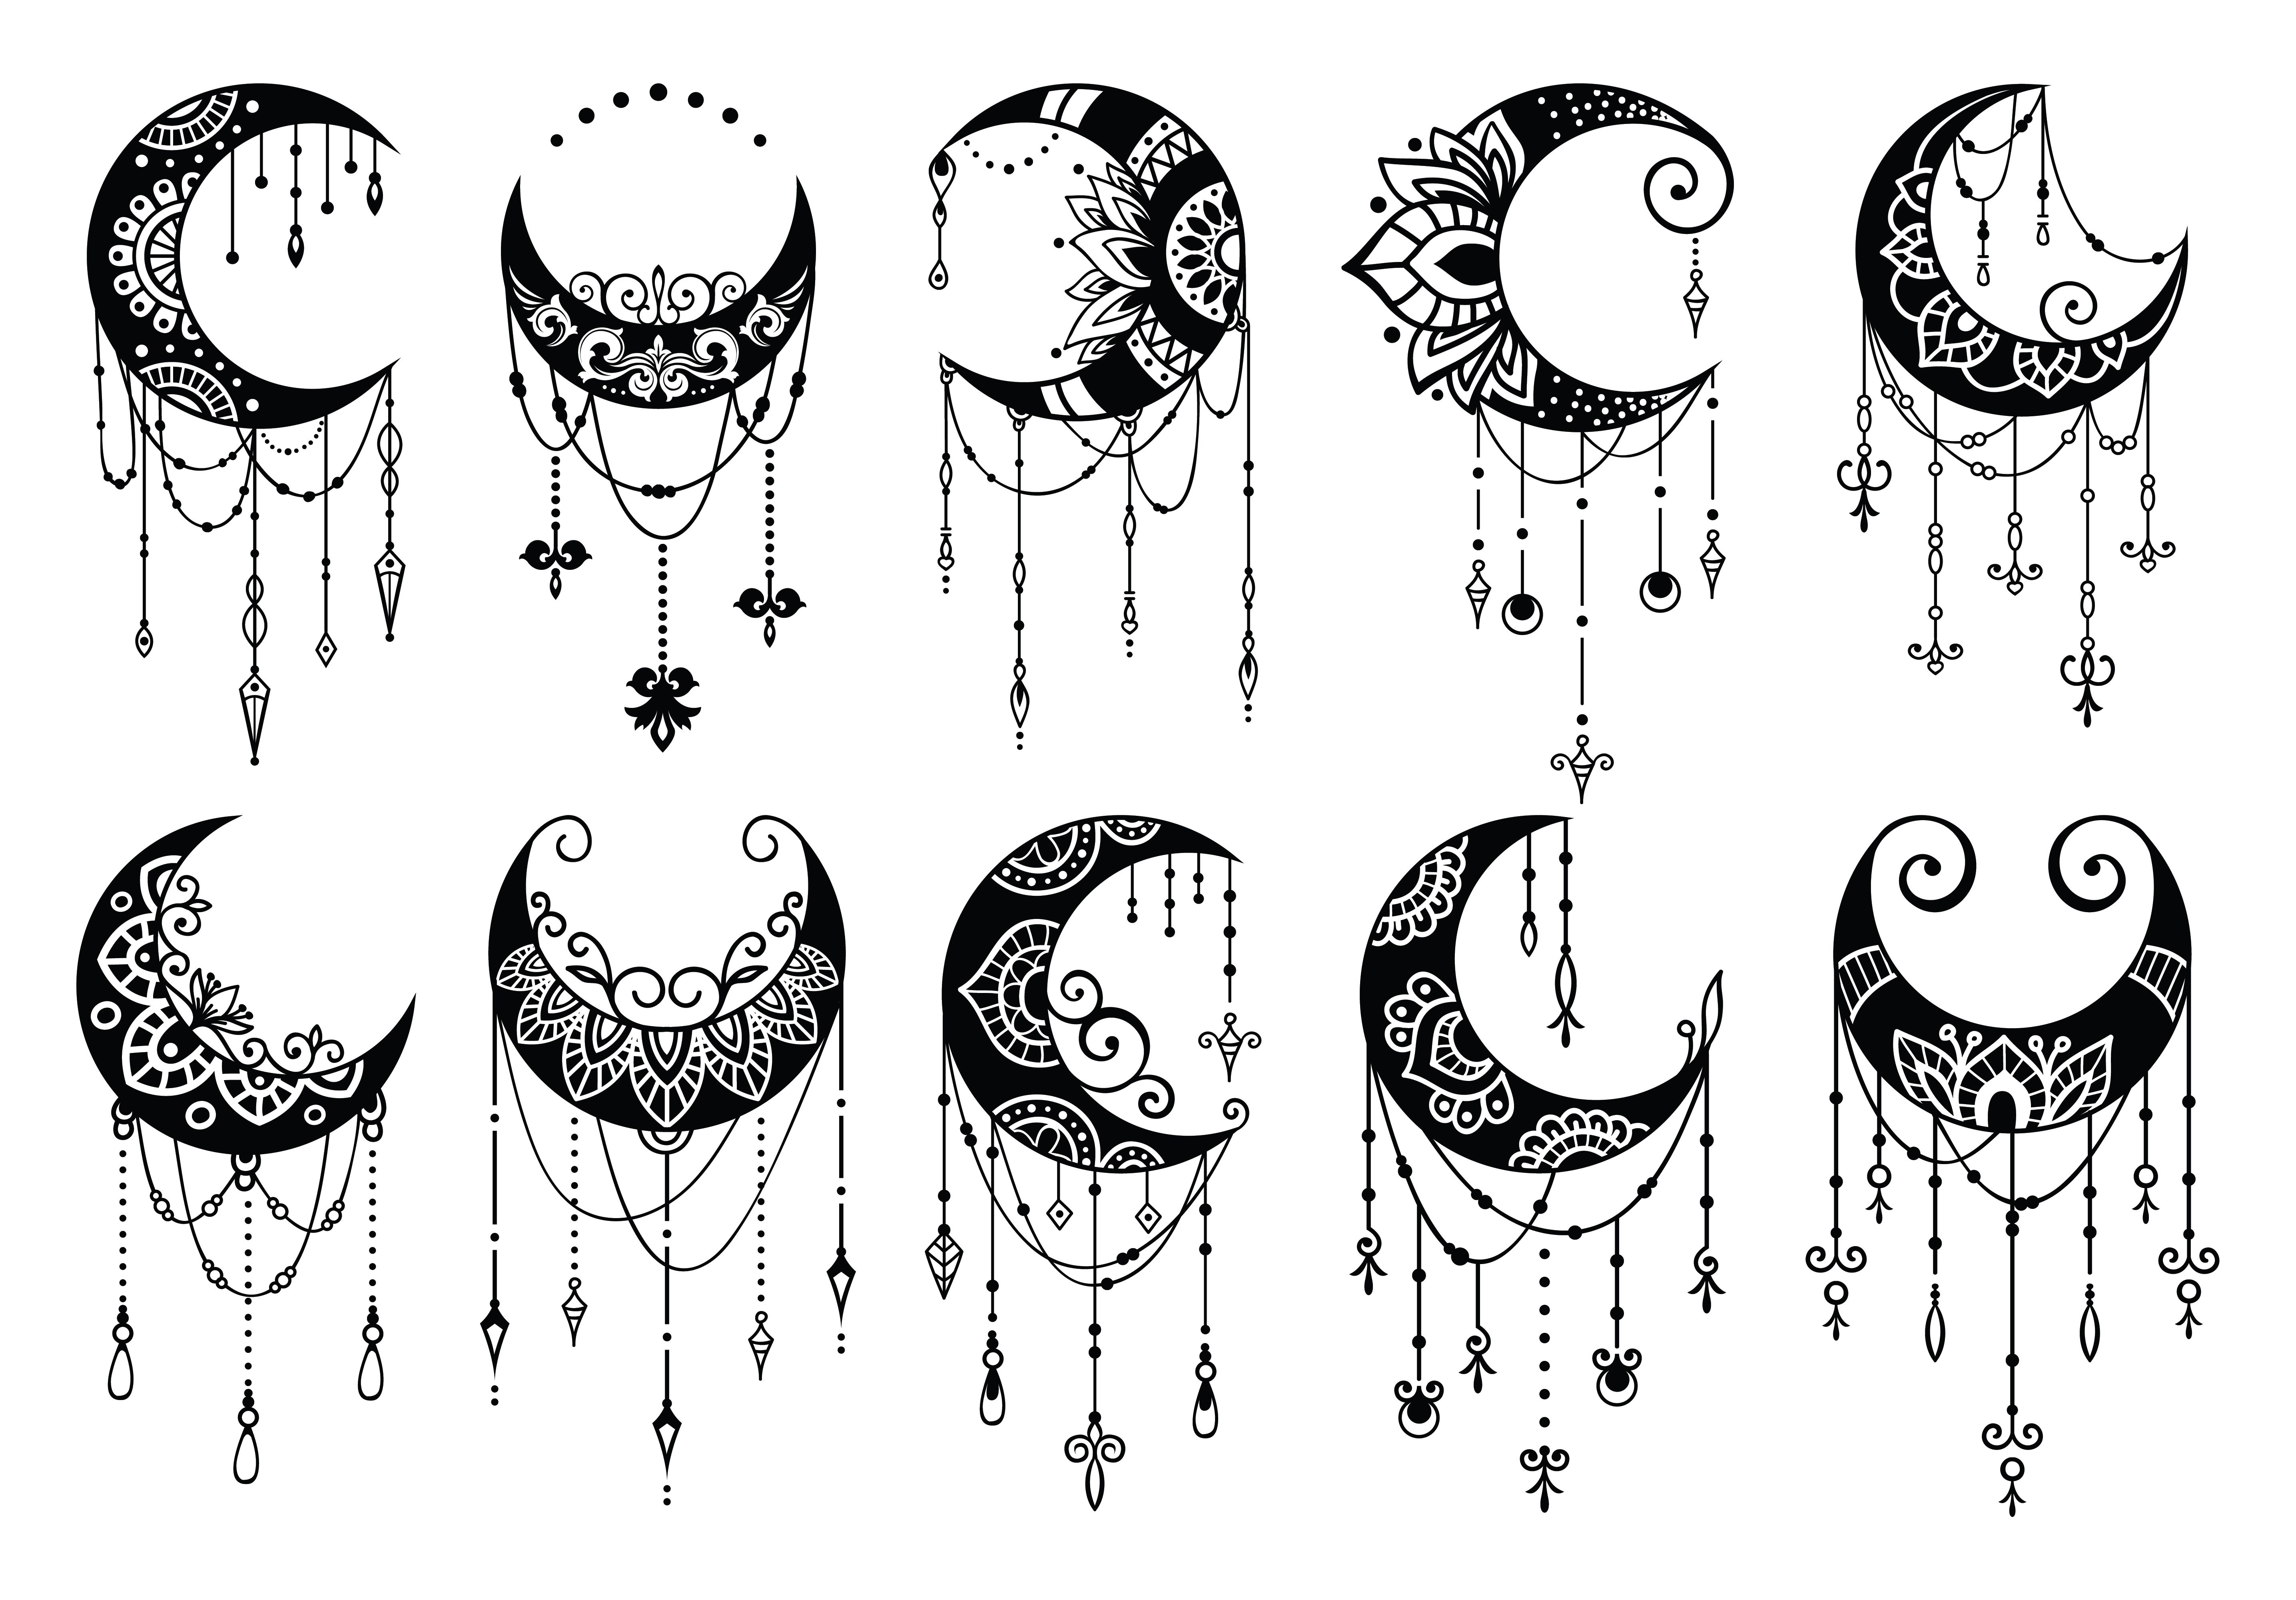 These Are High Quality Files That Are Ready To Print Or Use With Any Design Web Page Or Blog This Set In 2020 Moon Mandala Moon Decor Moon Tattoo